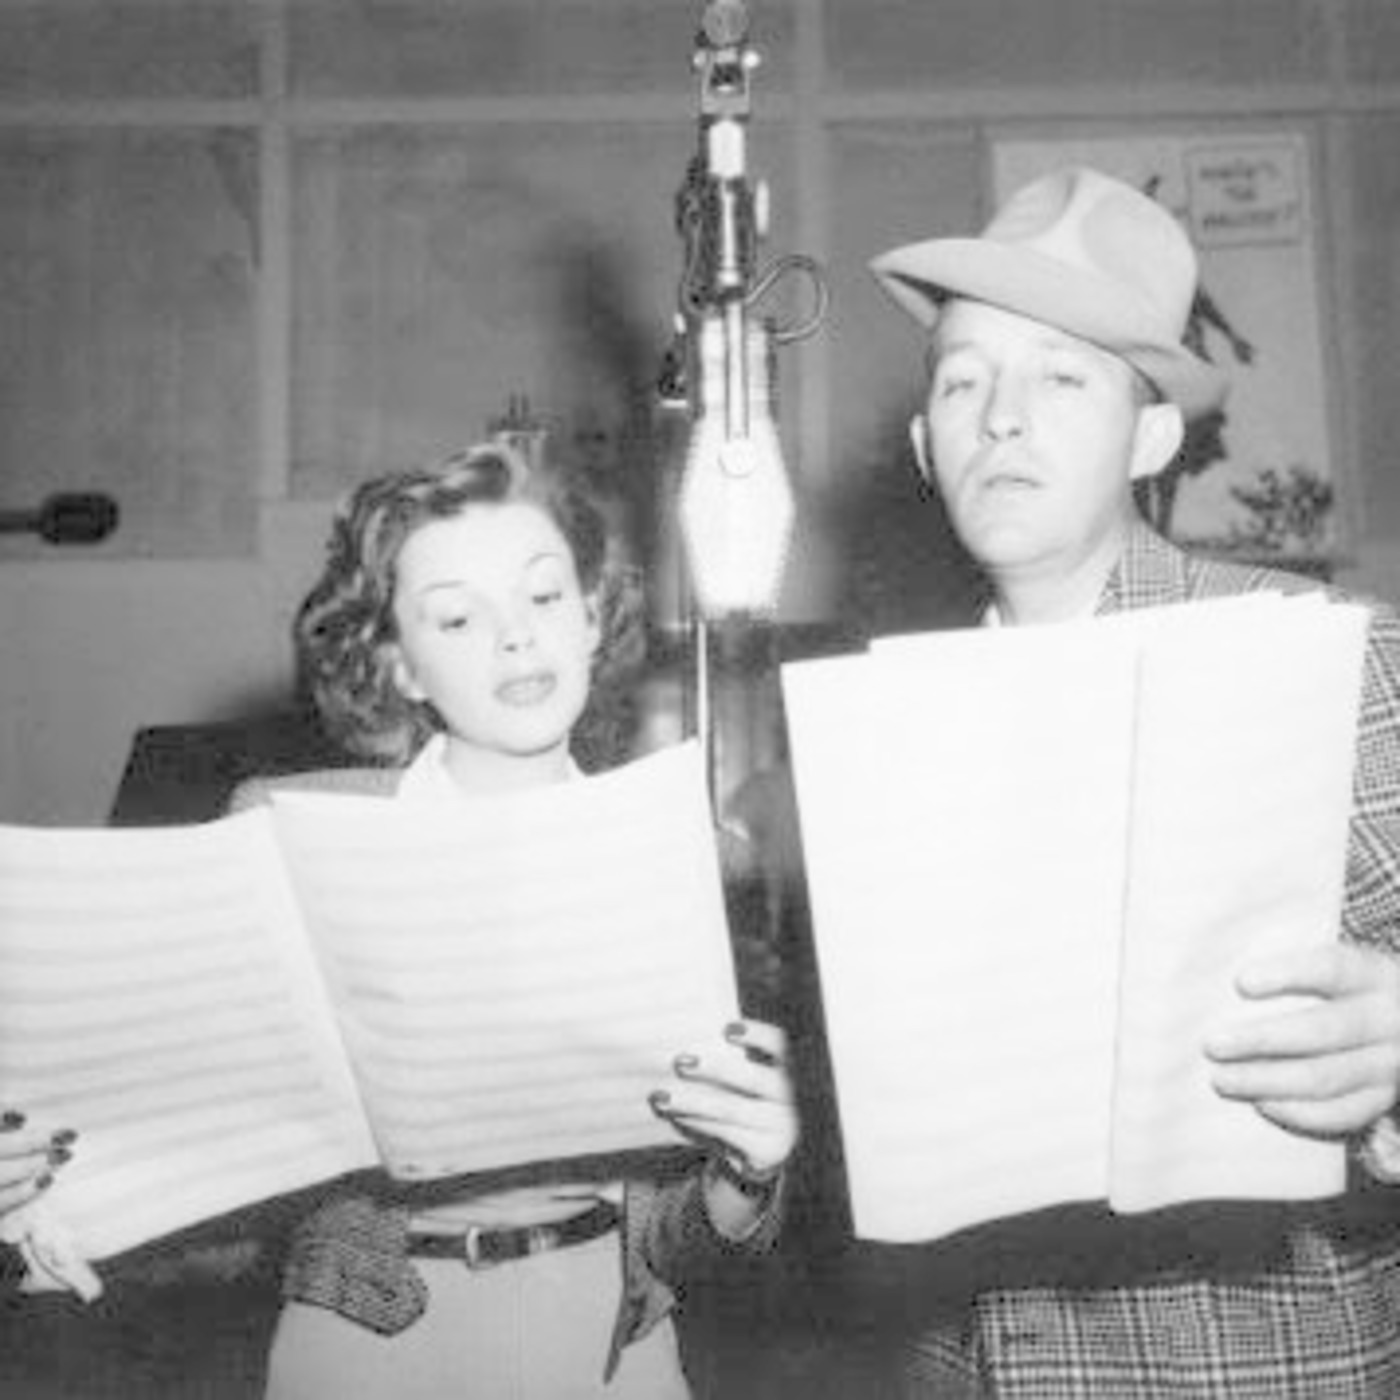 Bing Crosby Podcast 1946-11-27 Guest Judy Garland - Thanksgiving Show MP3